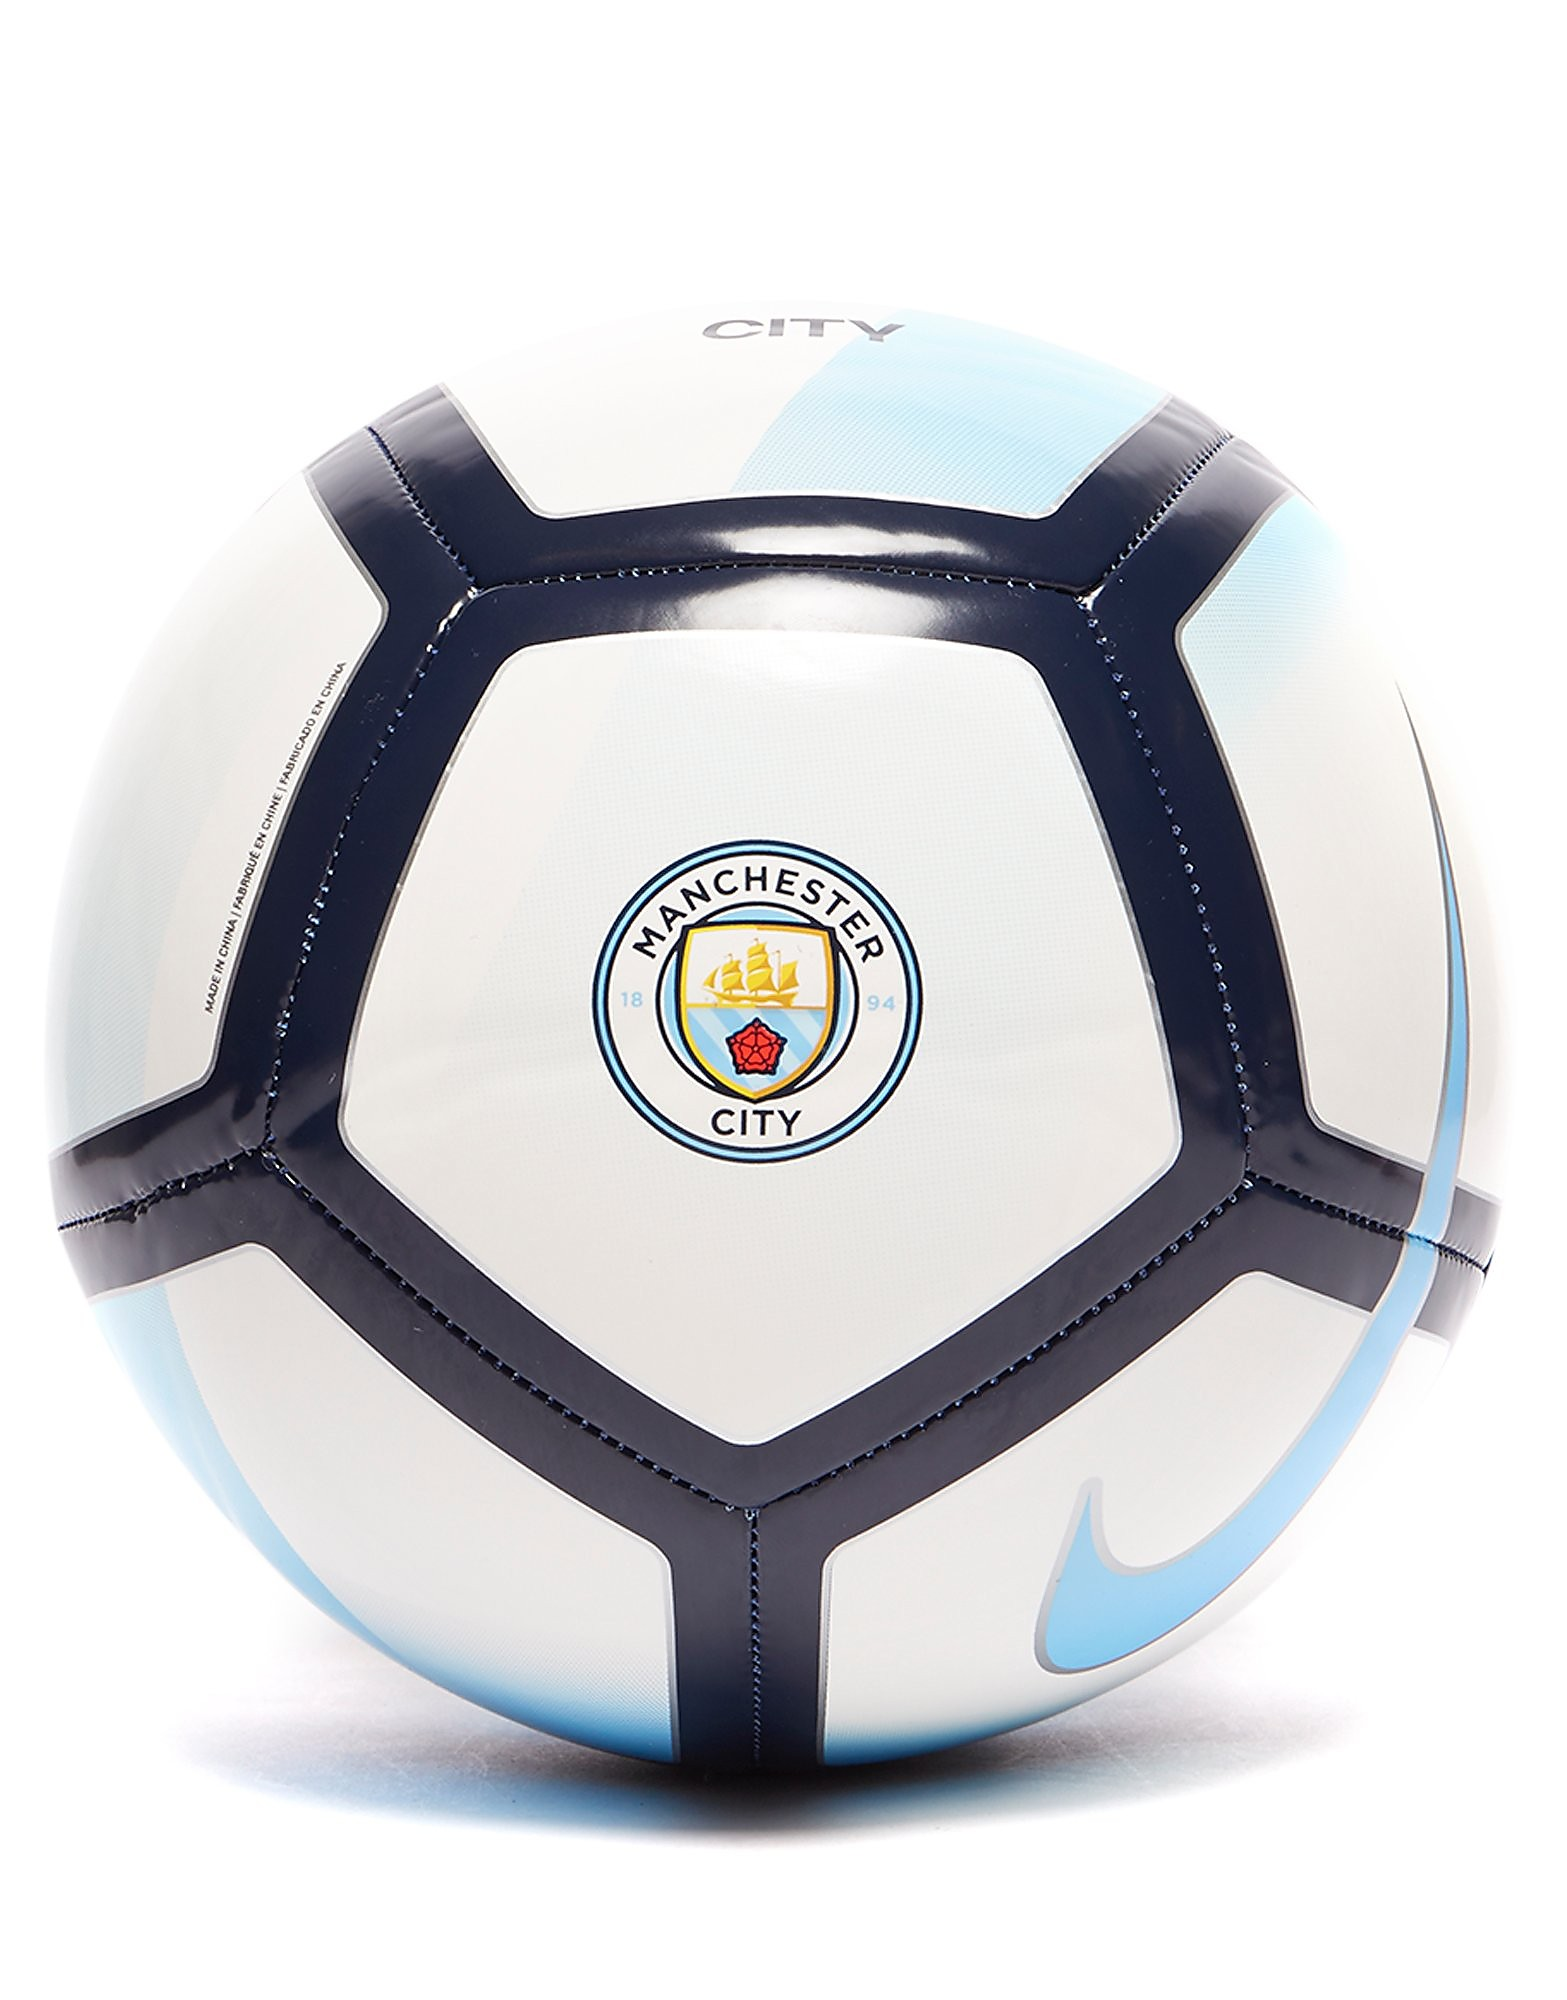 Nike Manchester City FC Pitch Football